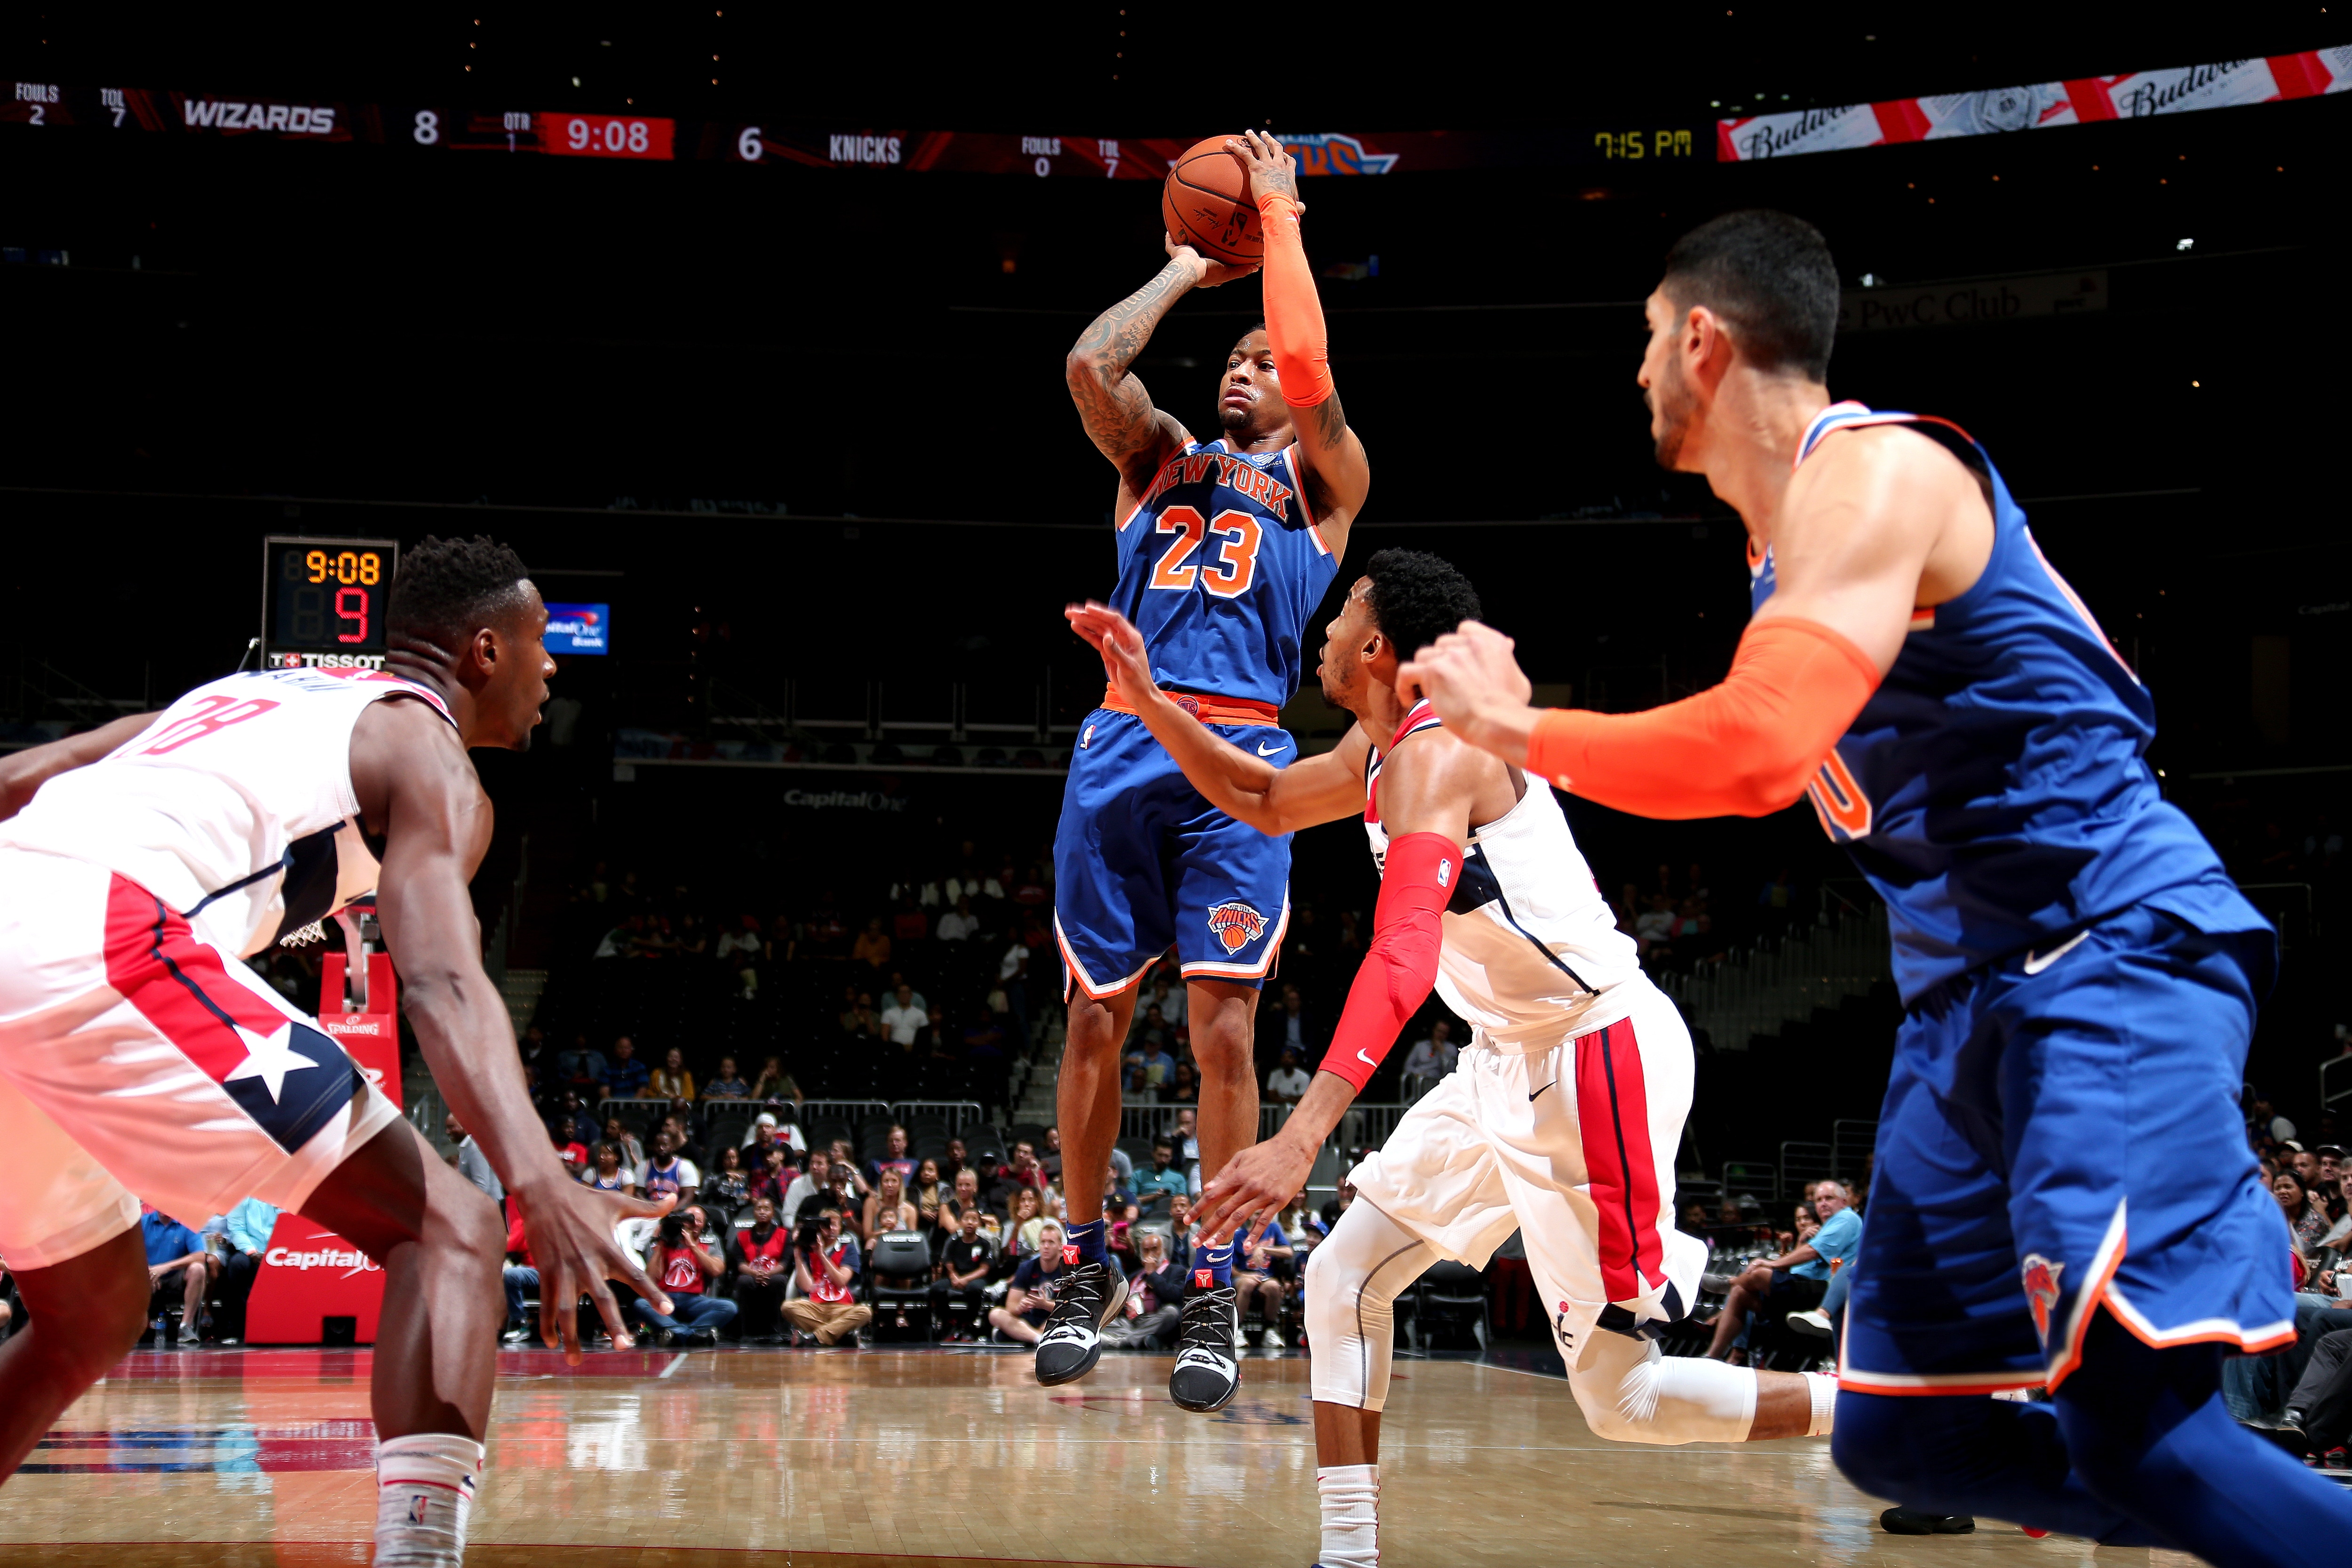 Knicks on the Court: Oct 1 @ Wizards | New York Knicks